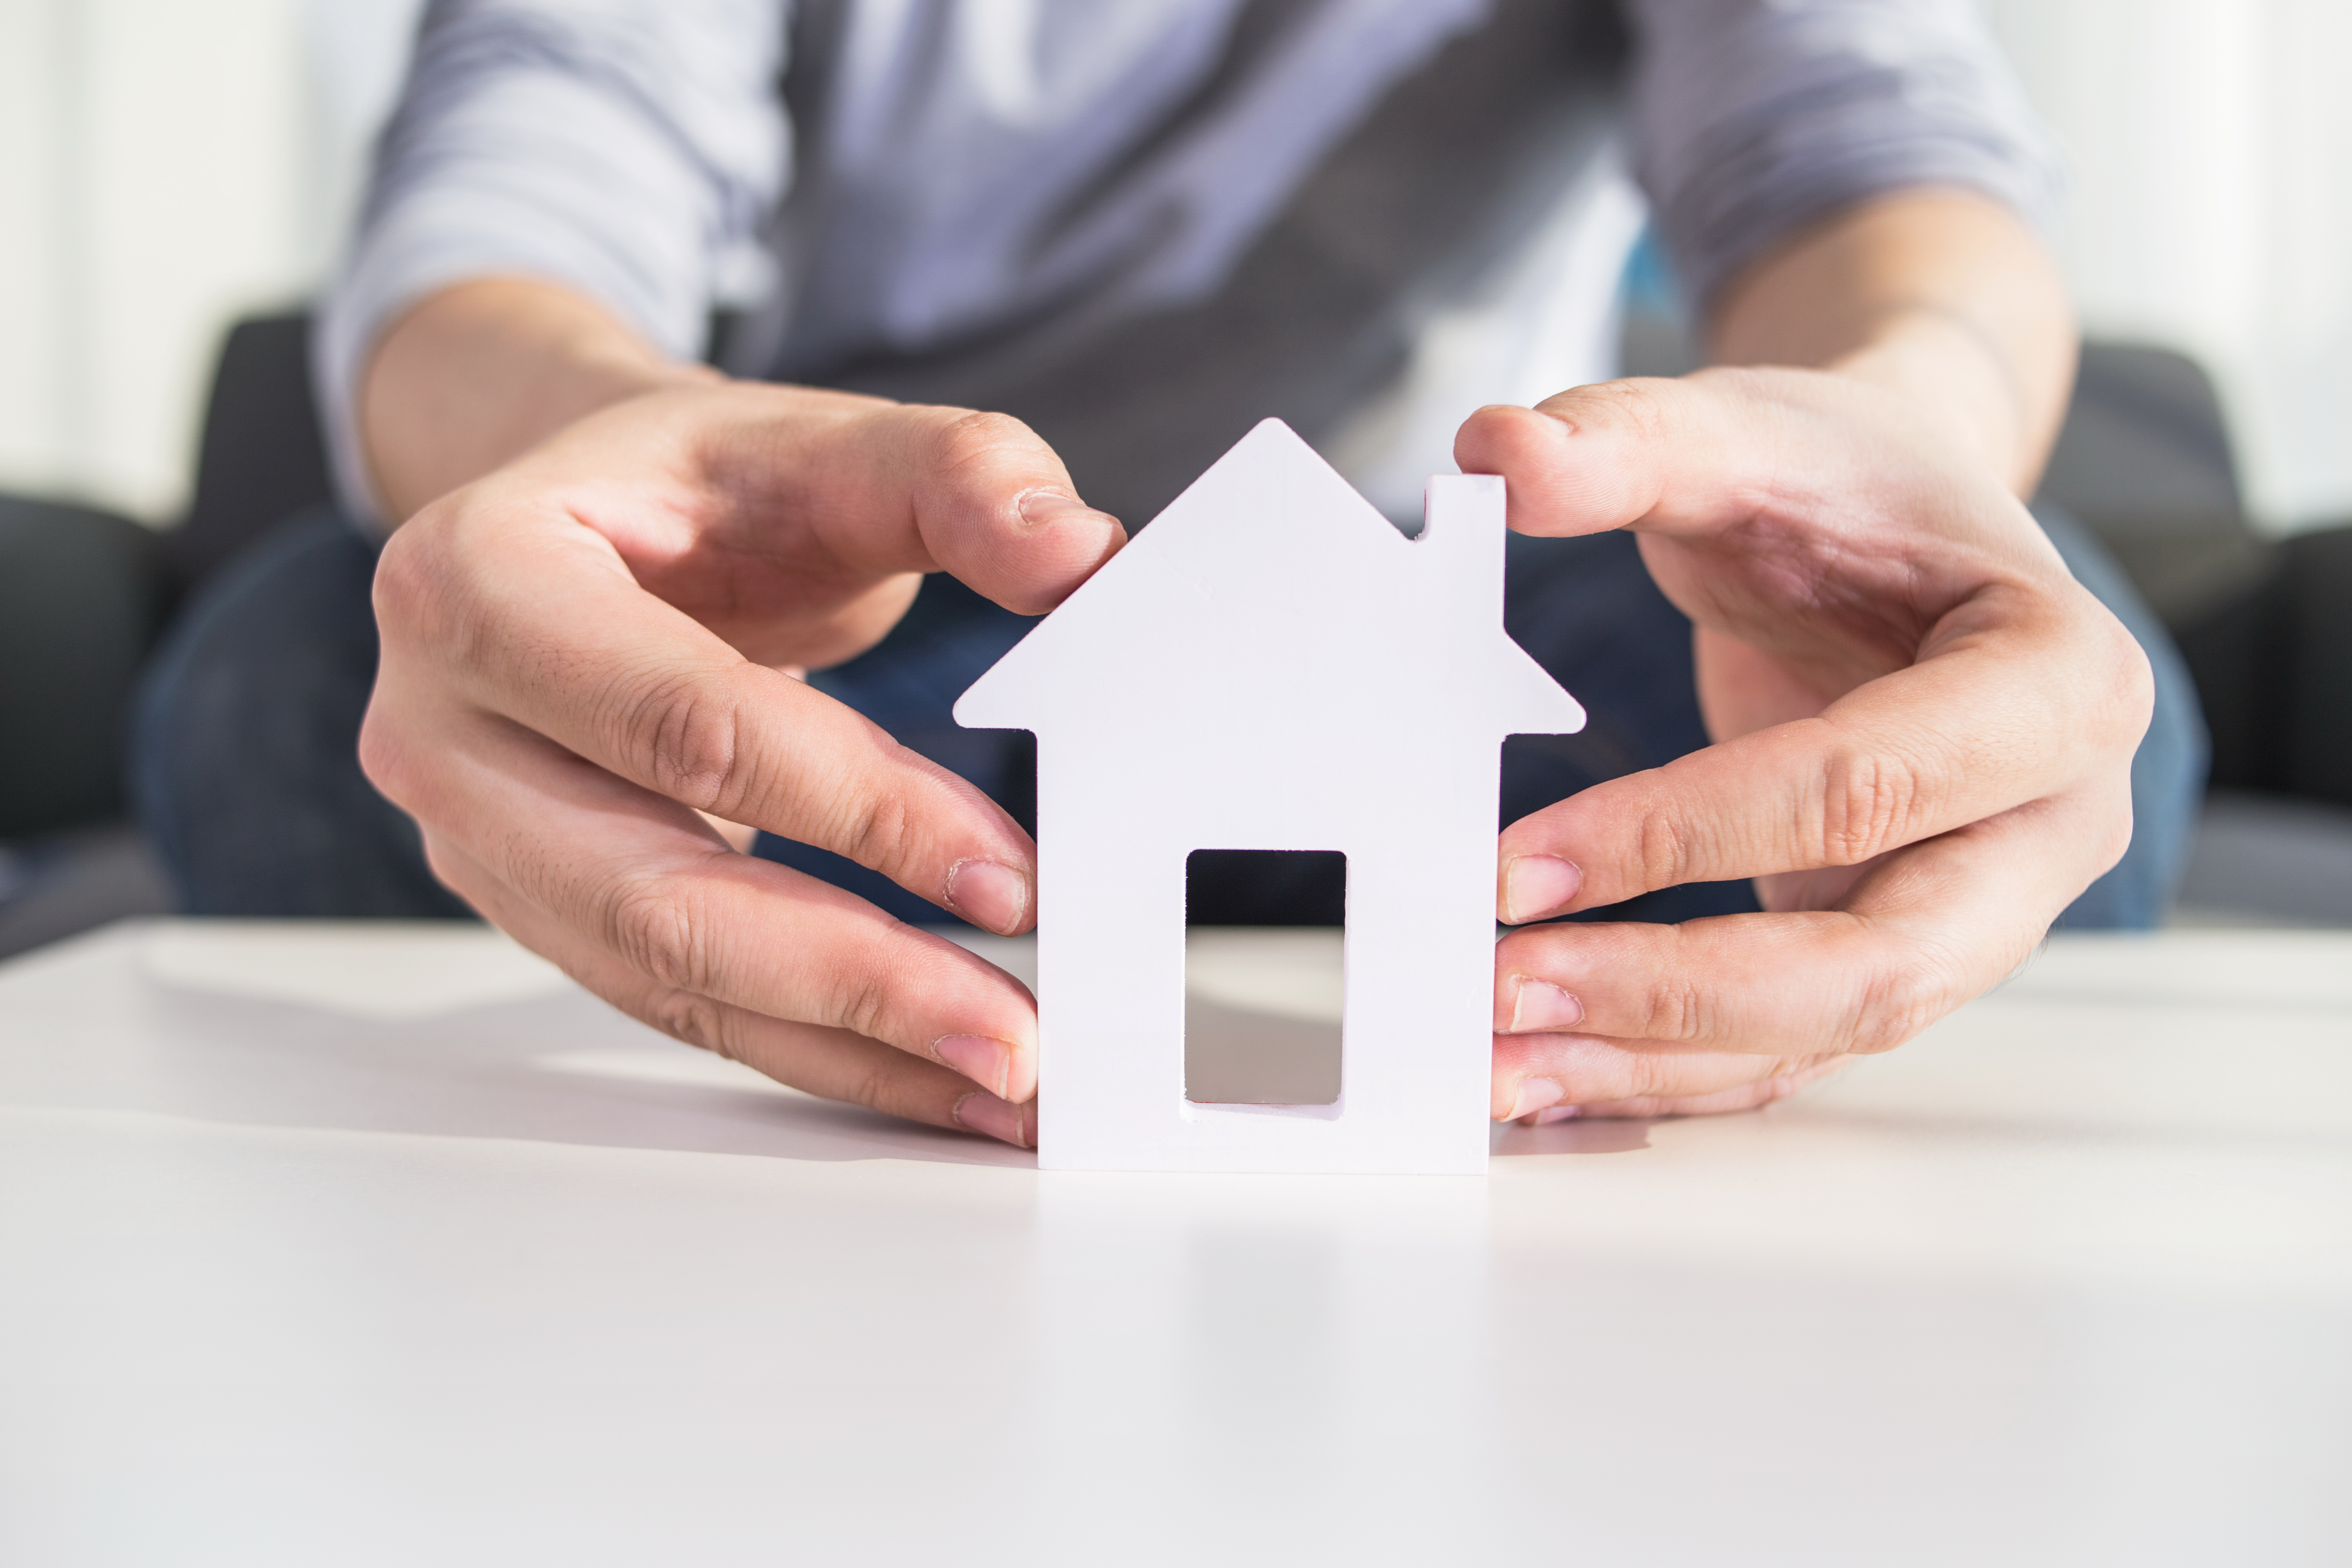 5 Common Real Estate Investing Mistakes